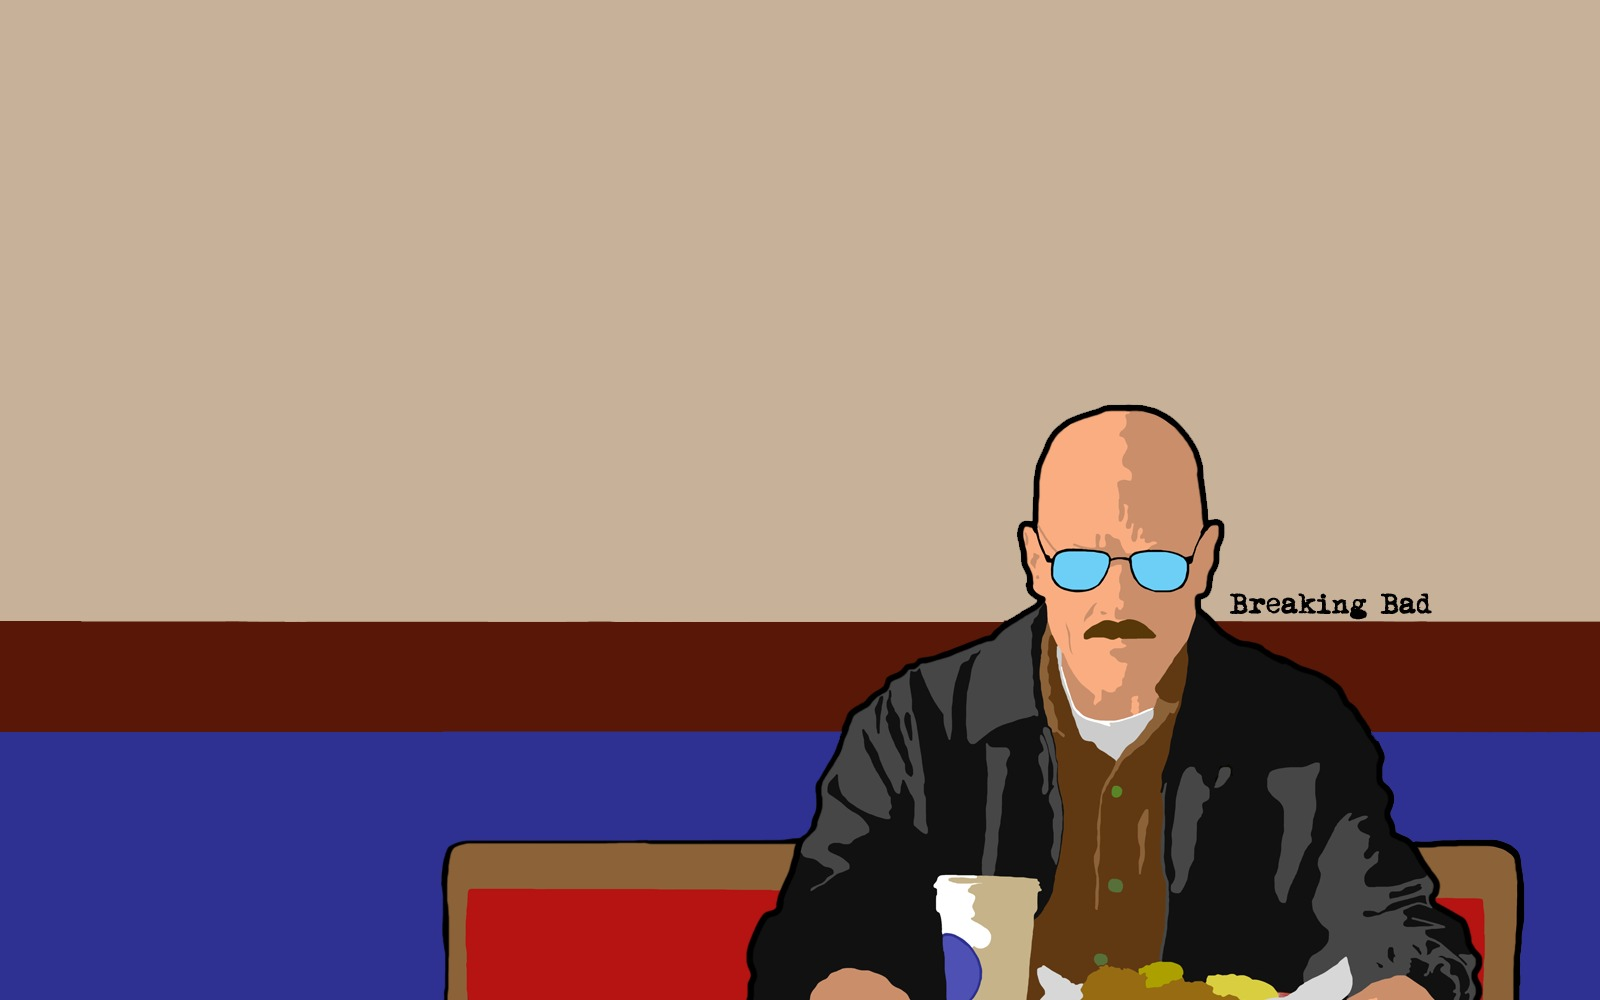 wallpapers de breaking bad mas de 50 (te encantaran)